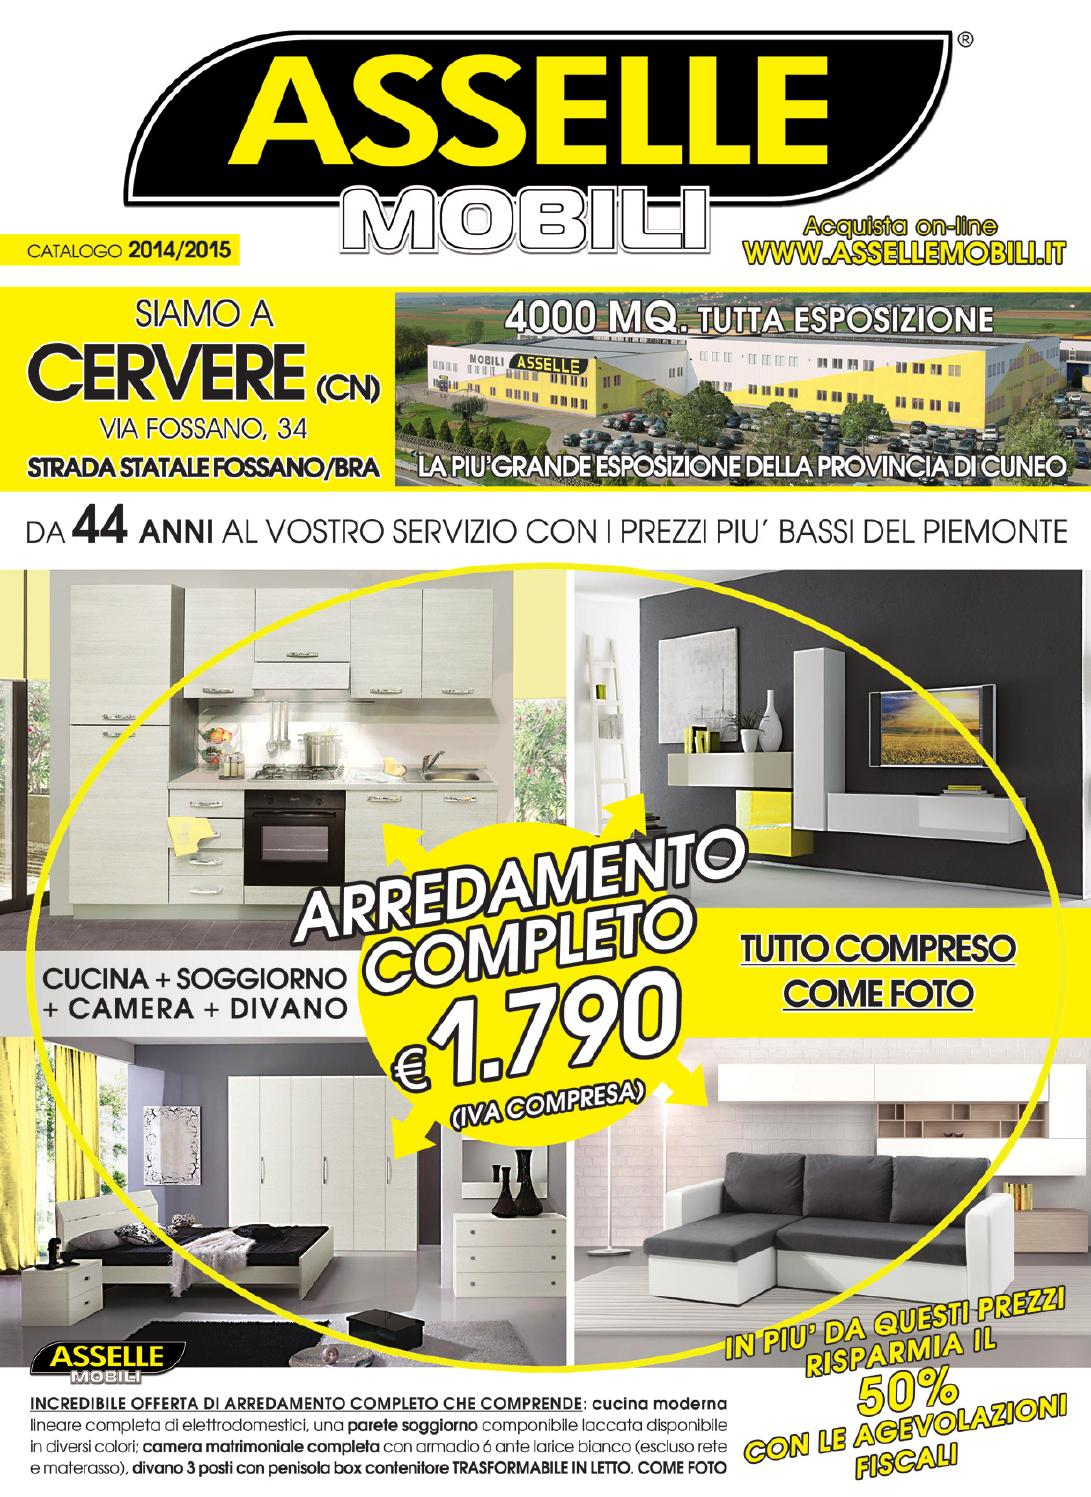 Asselle mobili catalogo 2014 by asselle mobili issuu - Asselle mobili cucine ...